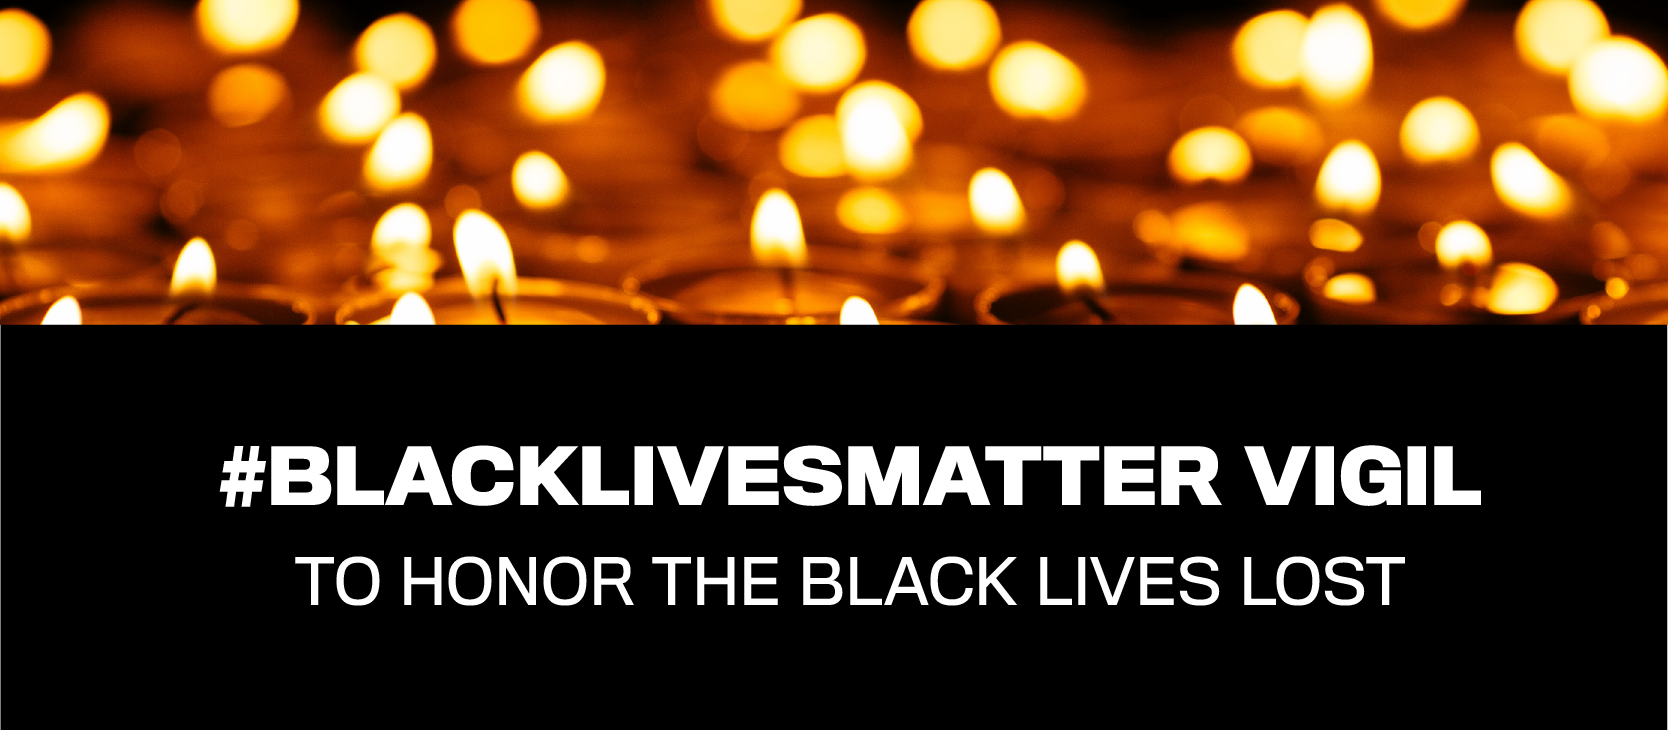 #BlackLivesMatter Vigil, To Honor the Black Lives Lost.